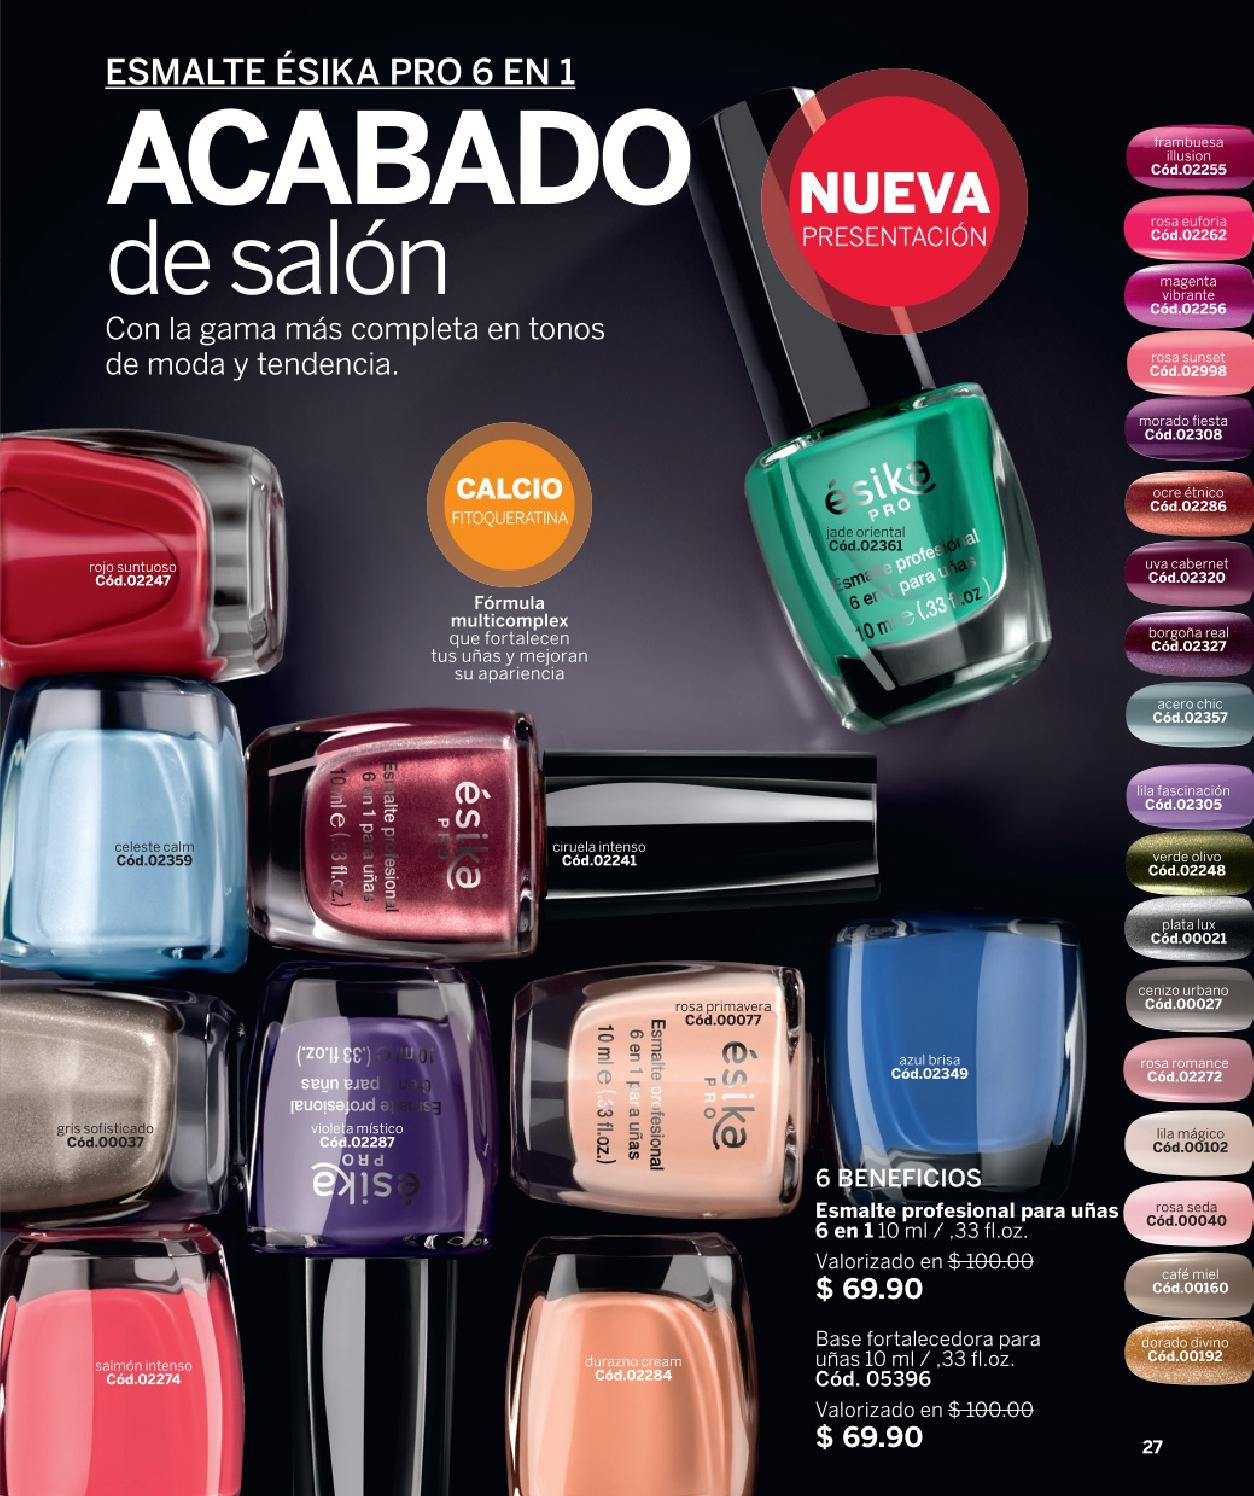 ISSUU - Esika mexico c14 2015 de Cuquiscosmetic | UÑAS | Pinterest